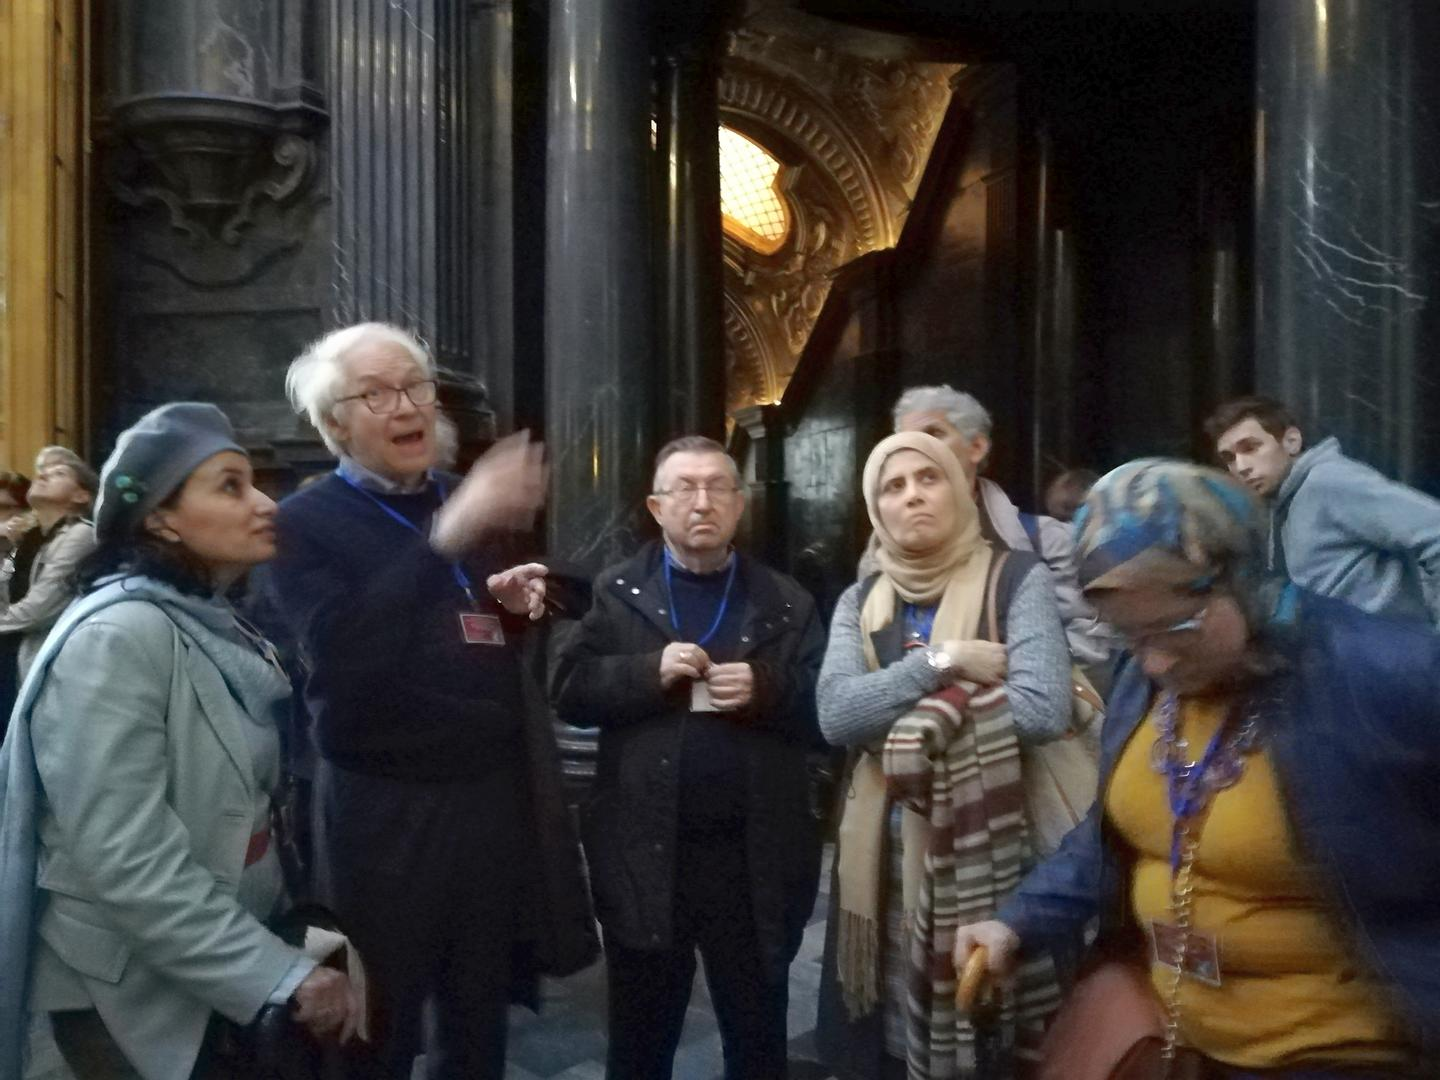 MMC3 Visit to the Chapel of the Holy Shroud, Turin